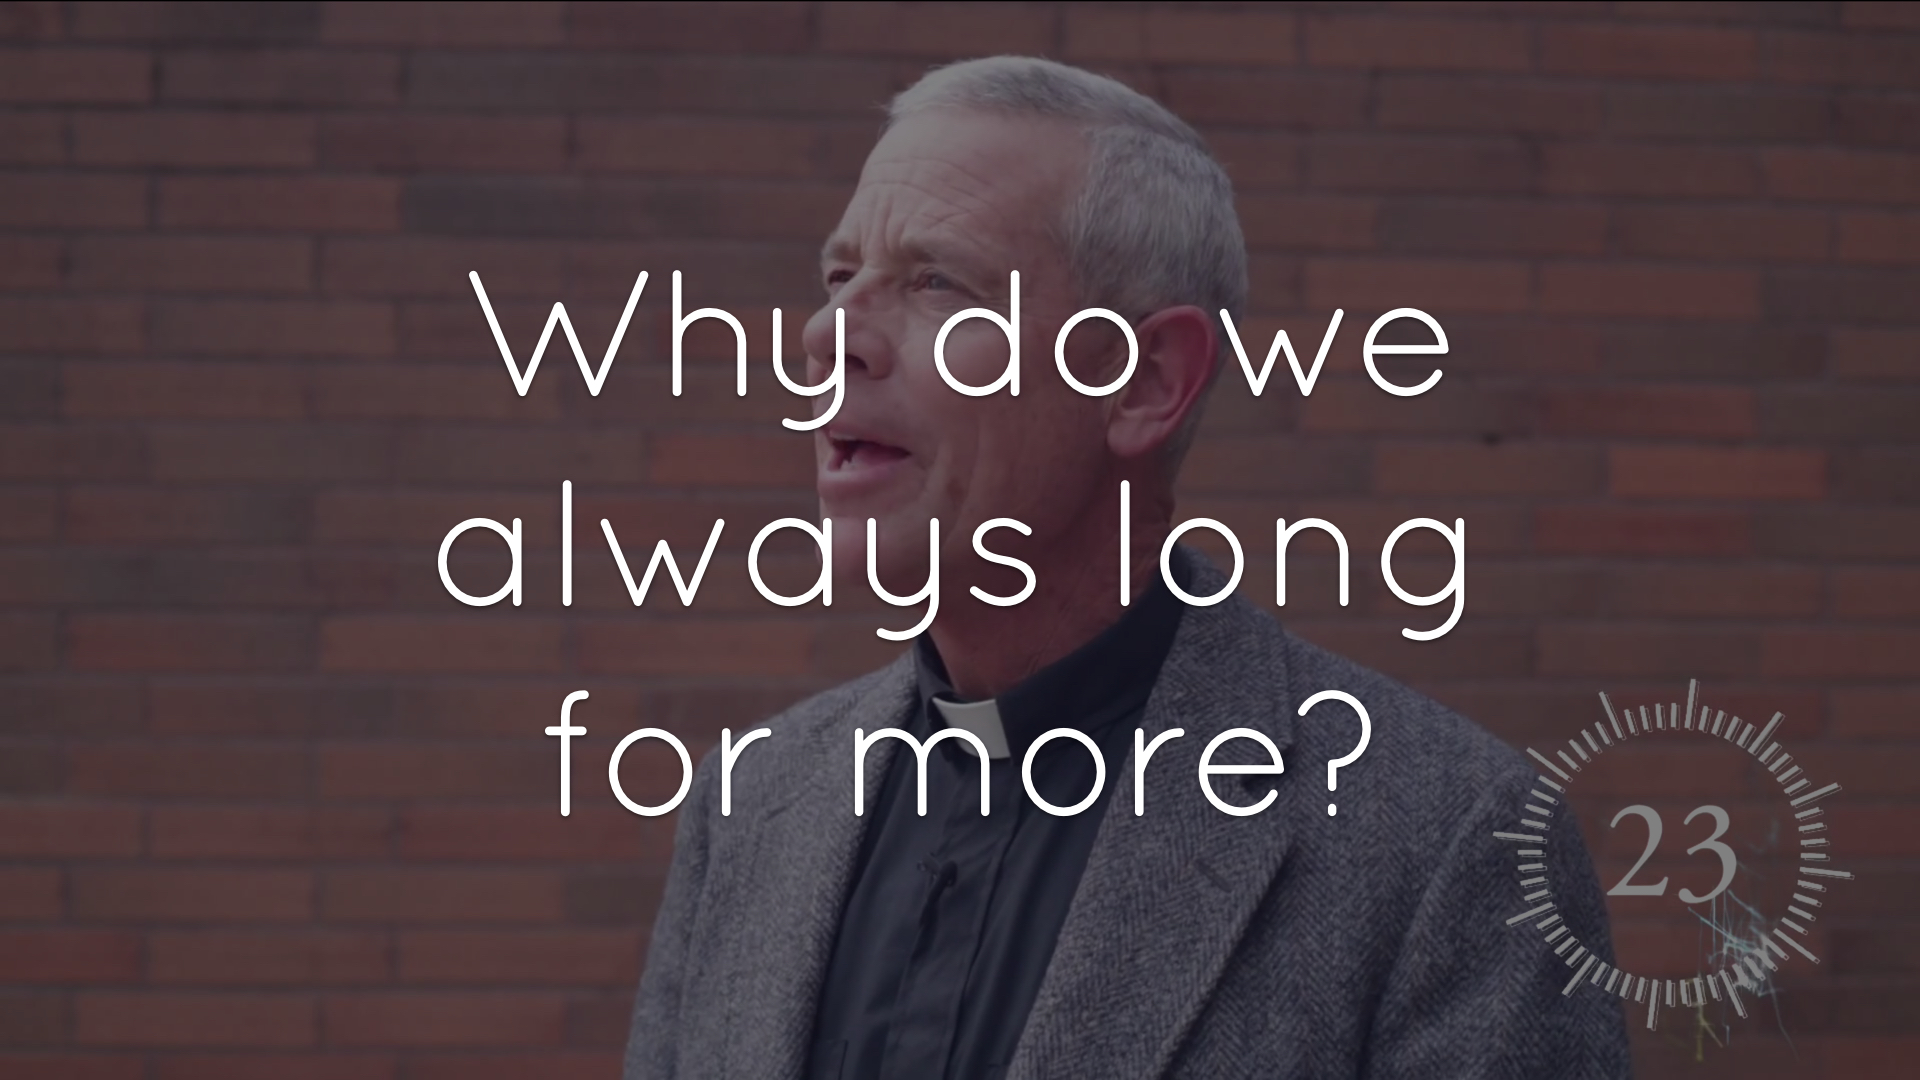 Why do we always long for more?